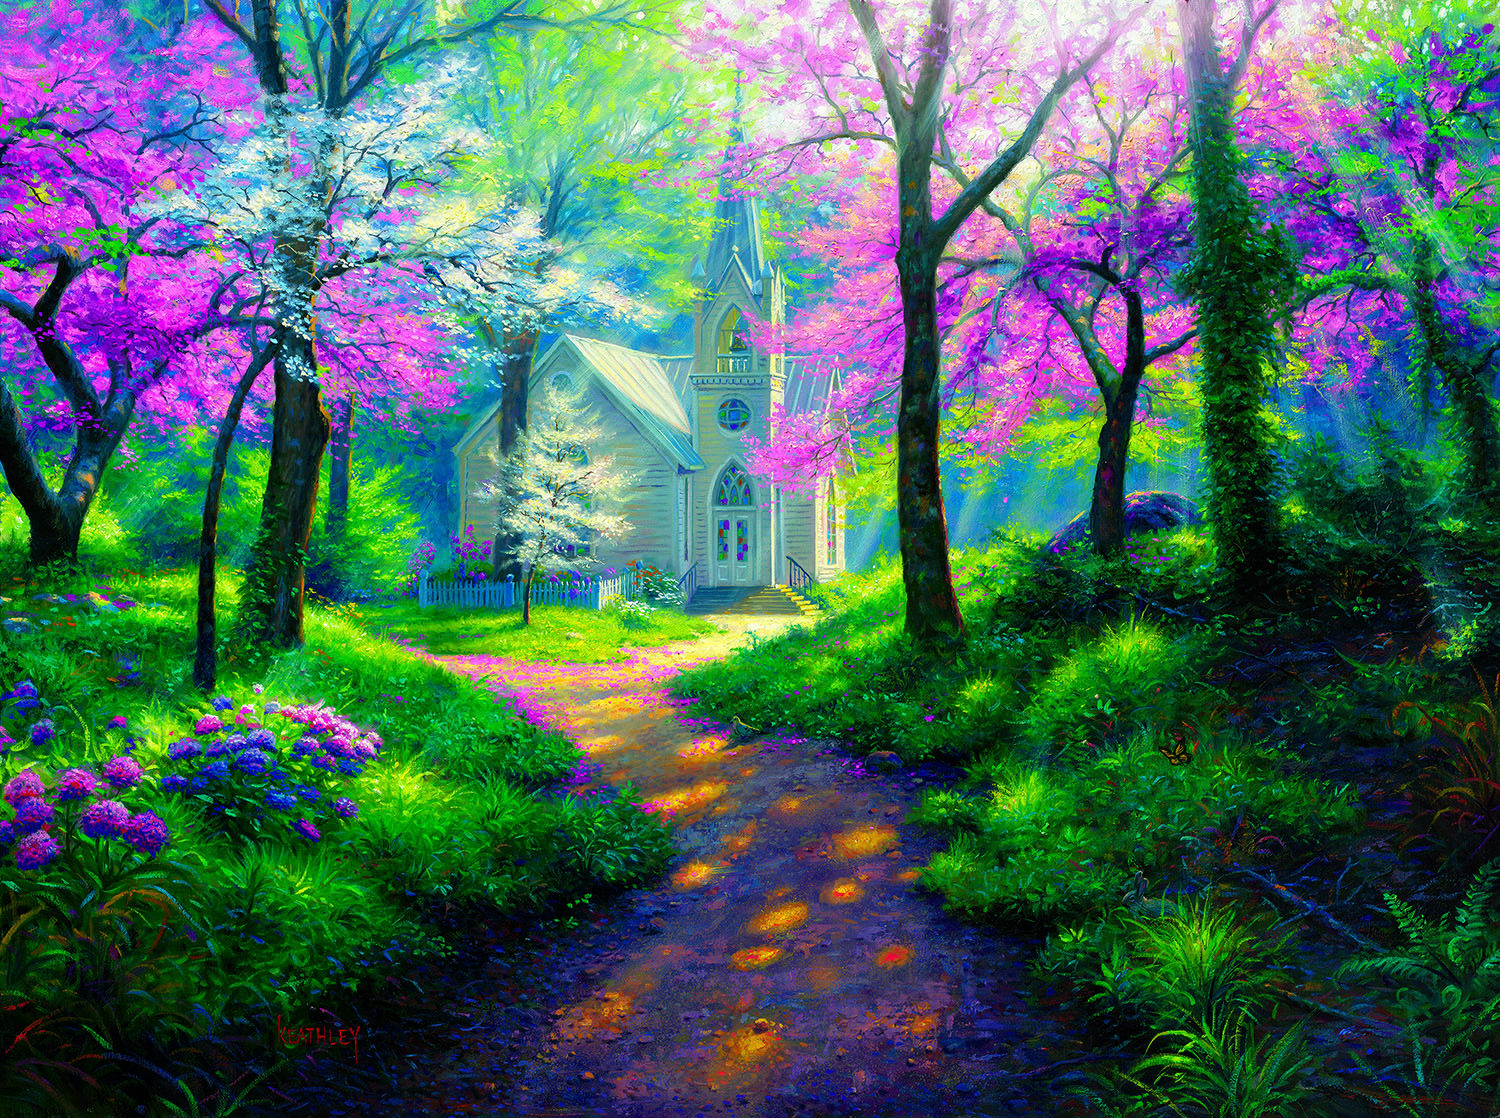 Spring Chapel 1000 pc Jigsaw Puzzle by SunsOut